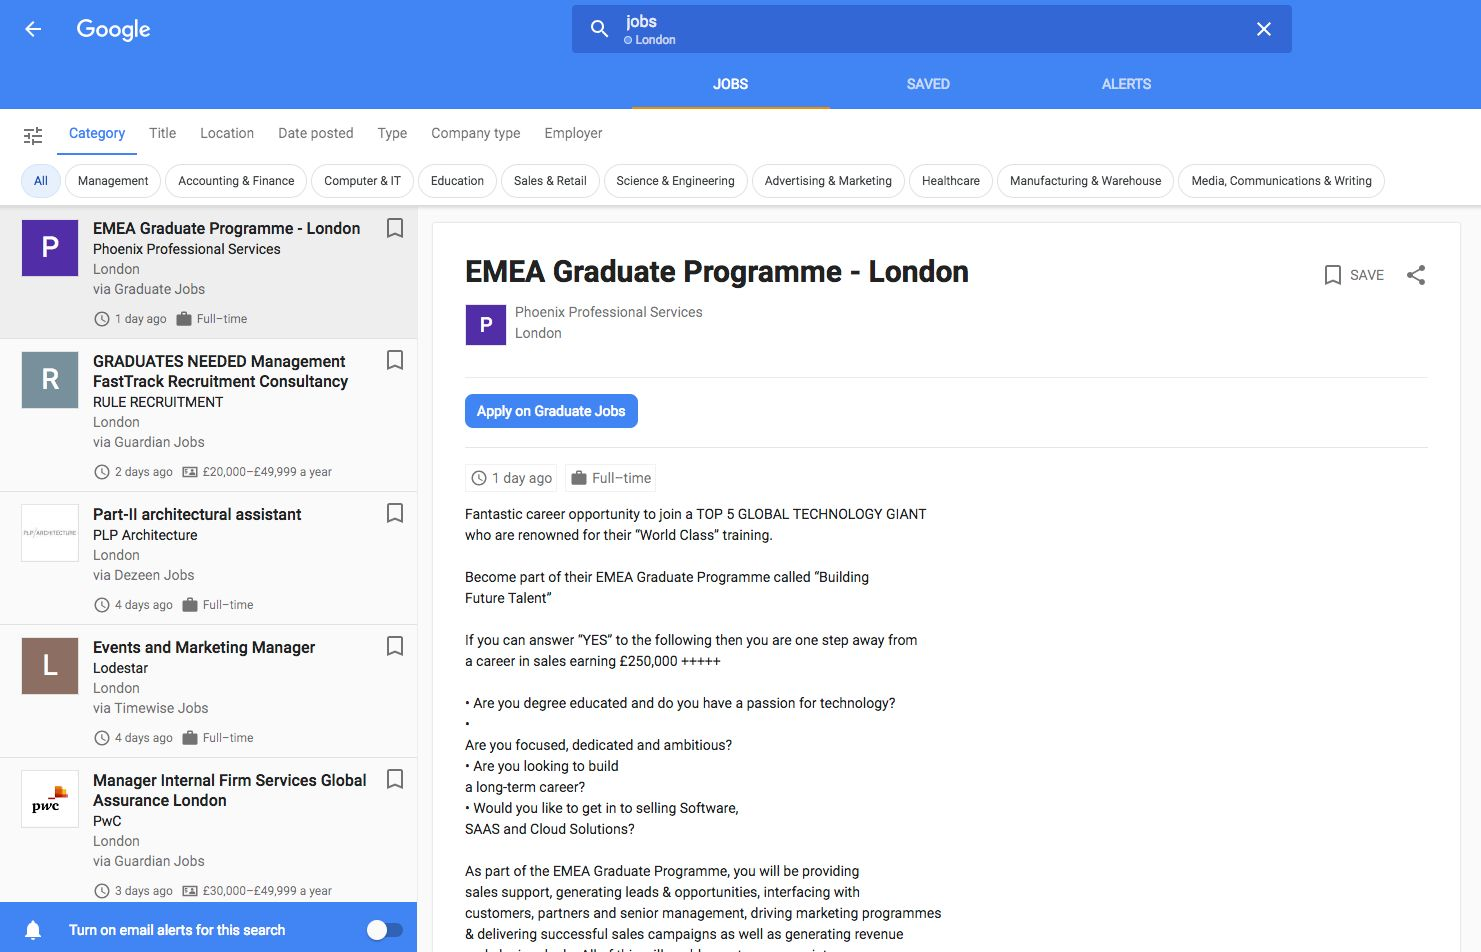 Google expands job search to the UK